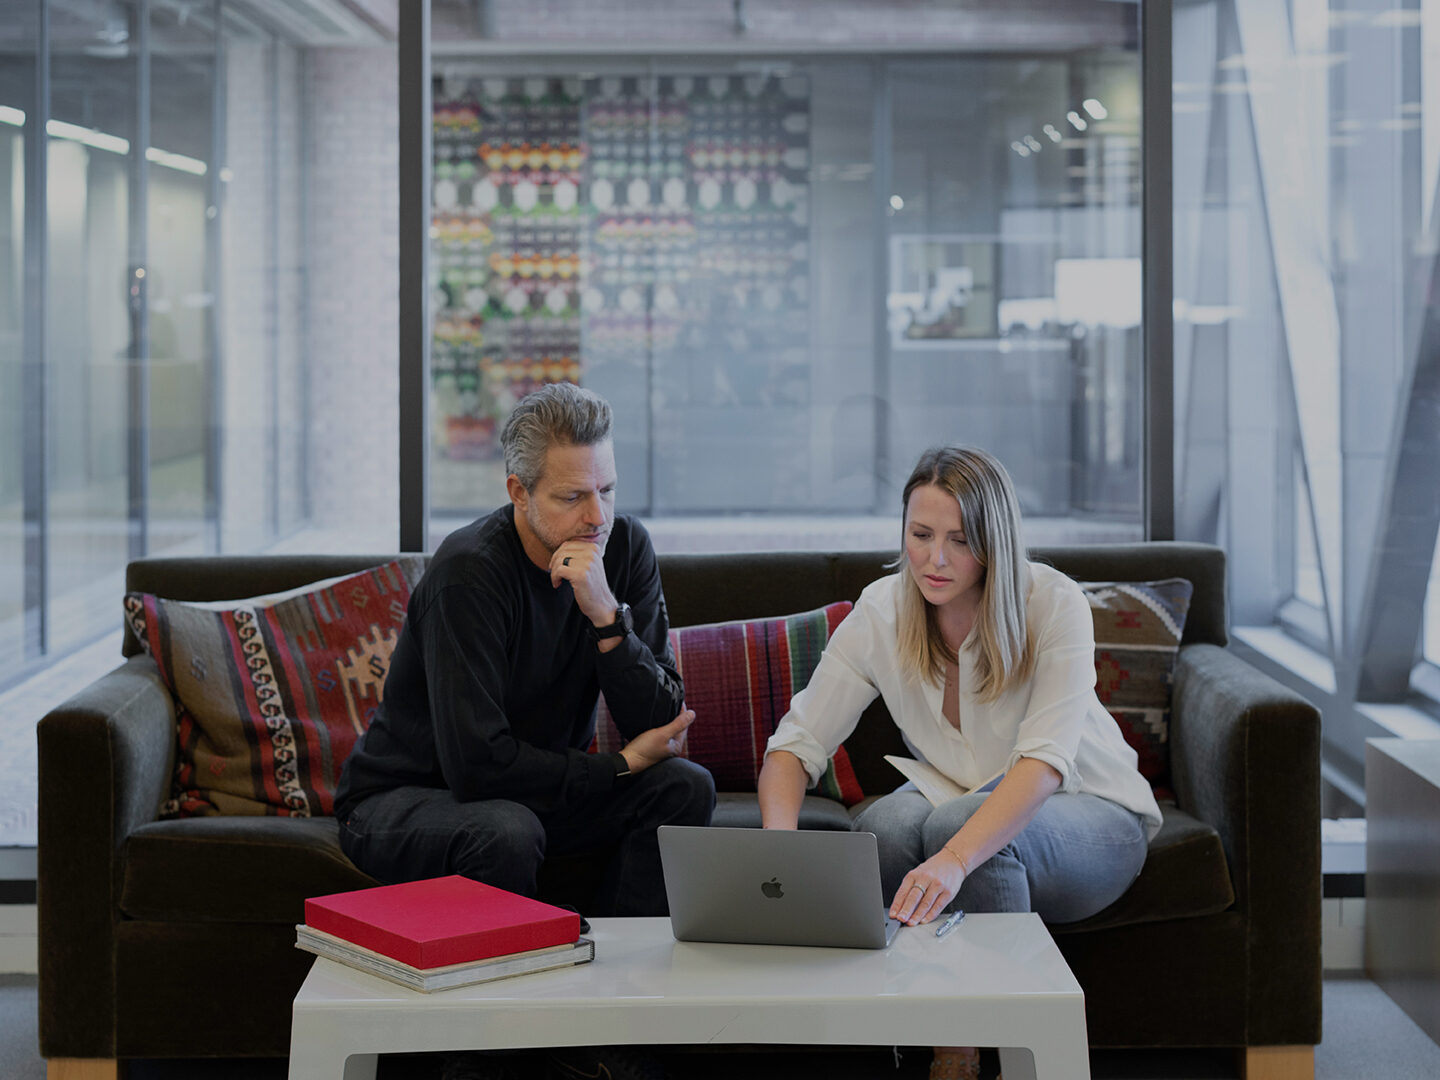 Man and woman reviewing work in office setting